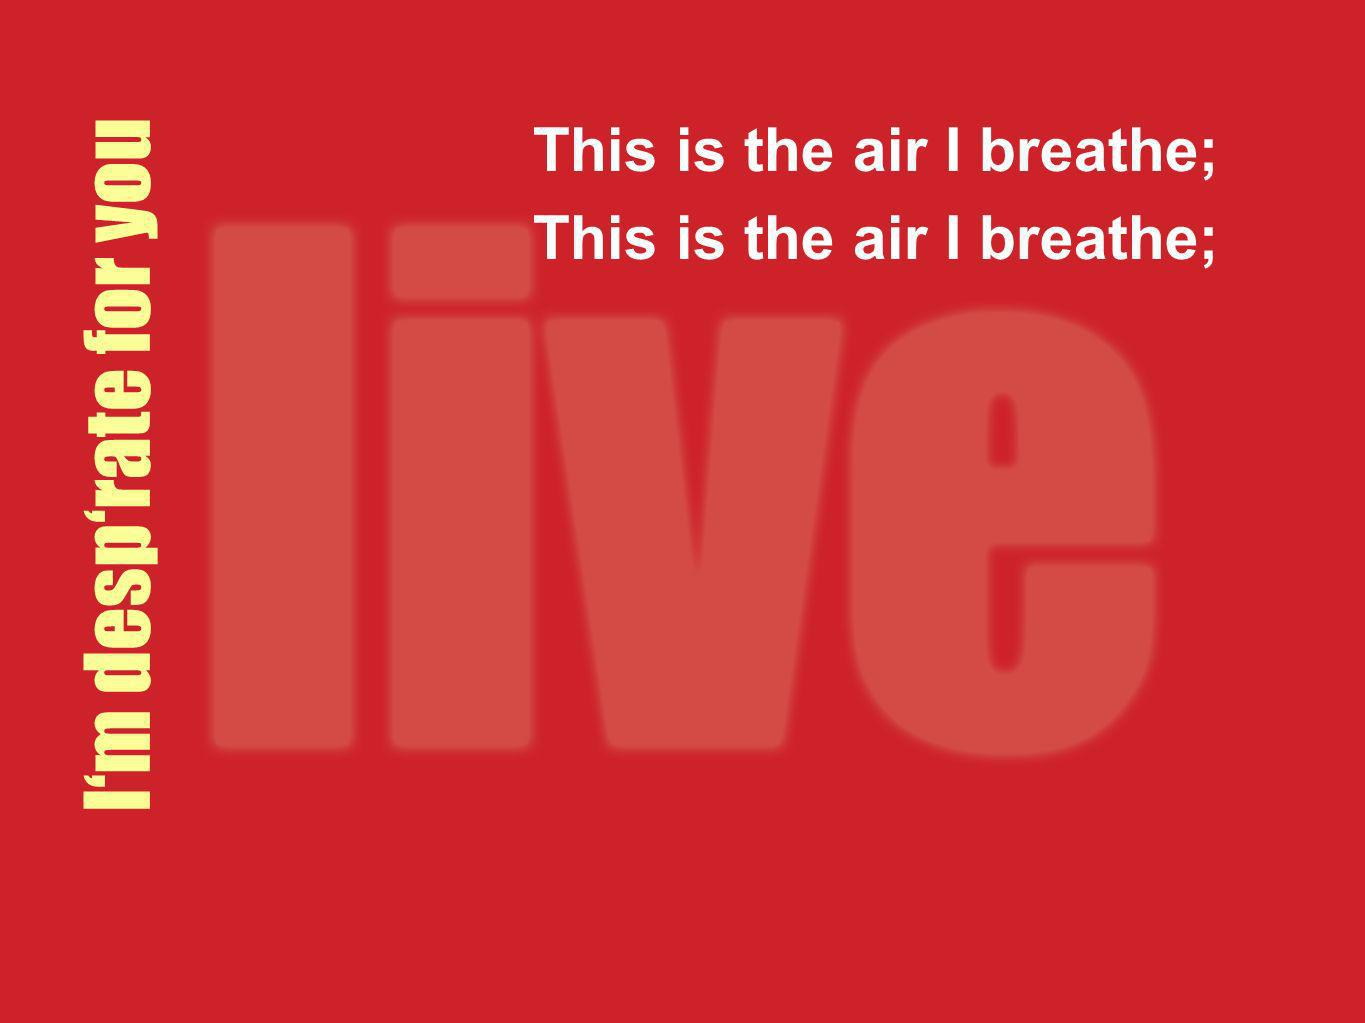 This is the air I breathe;